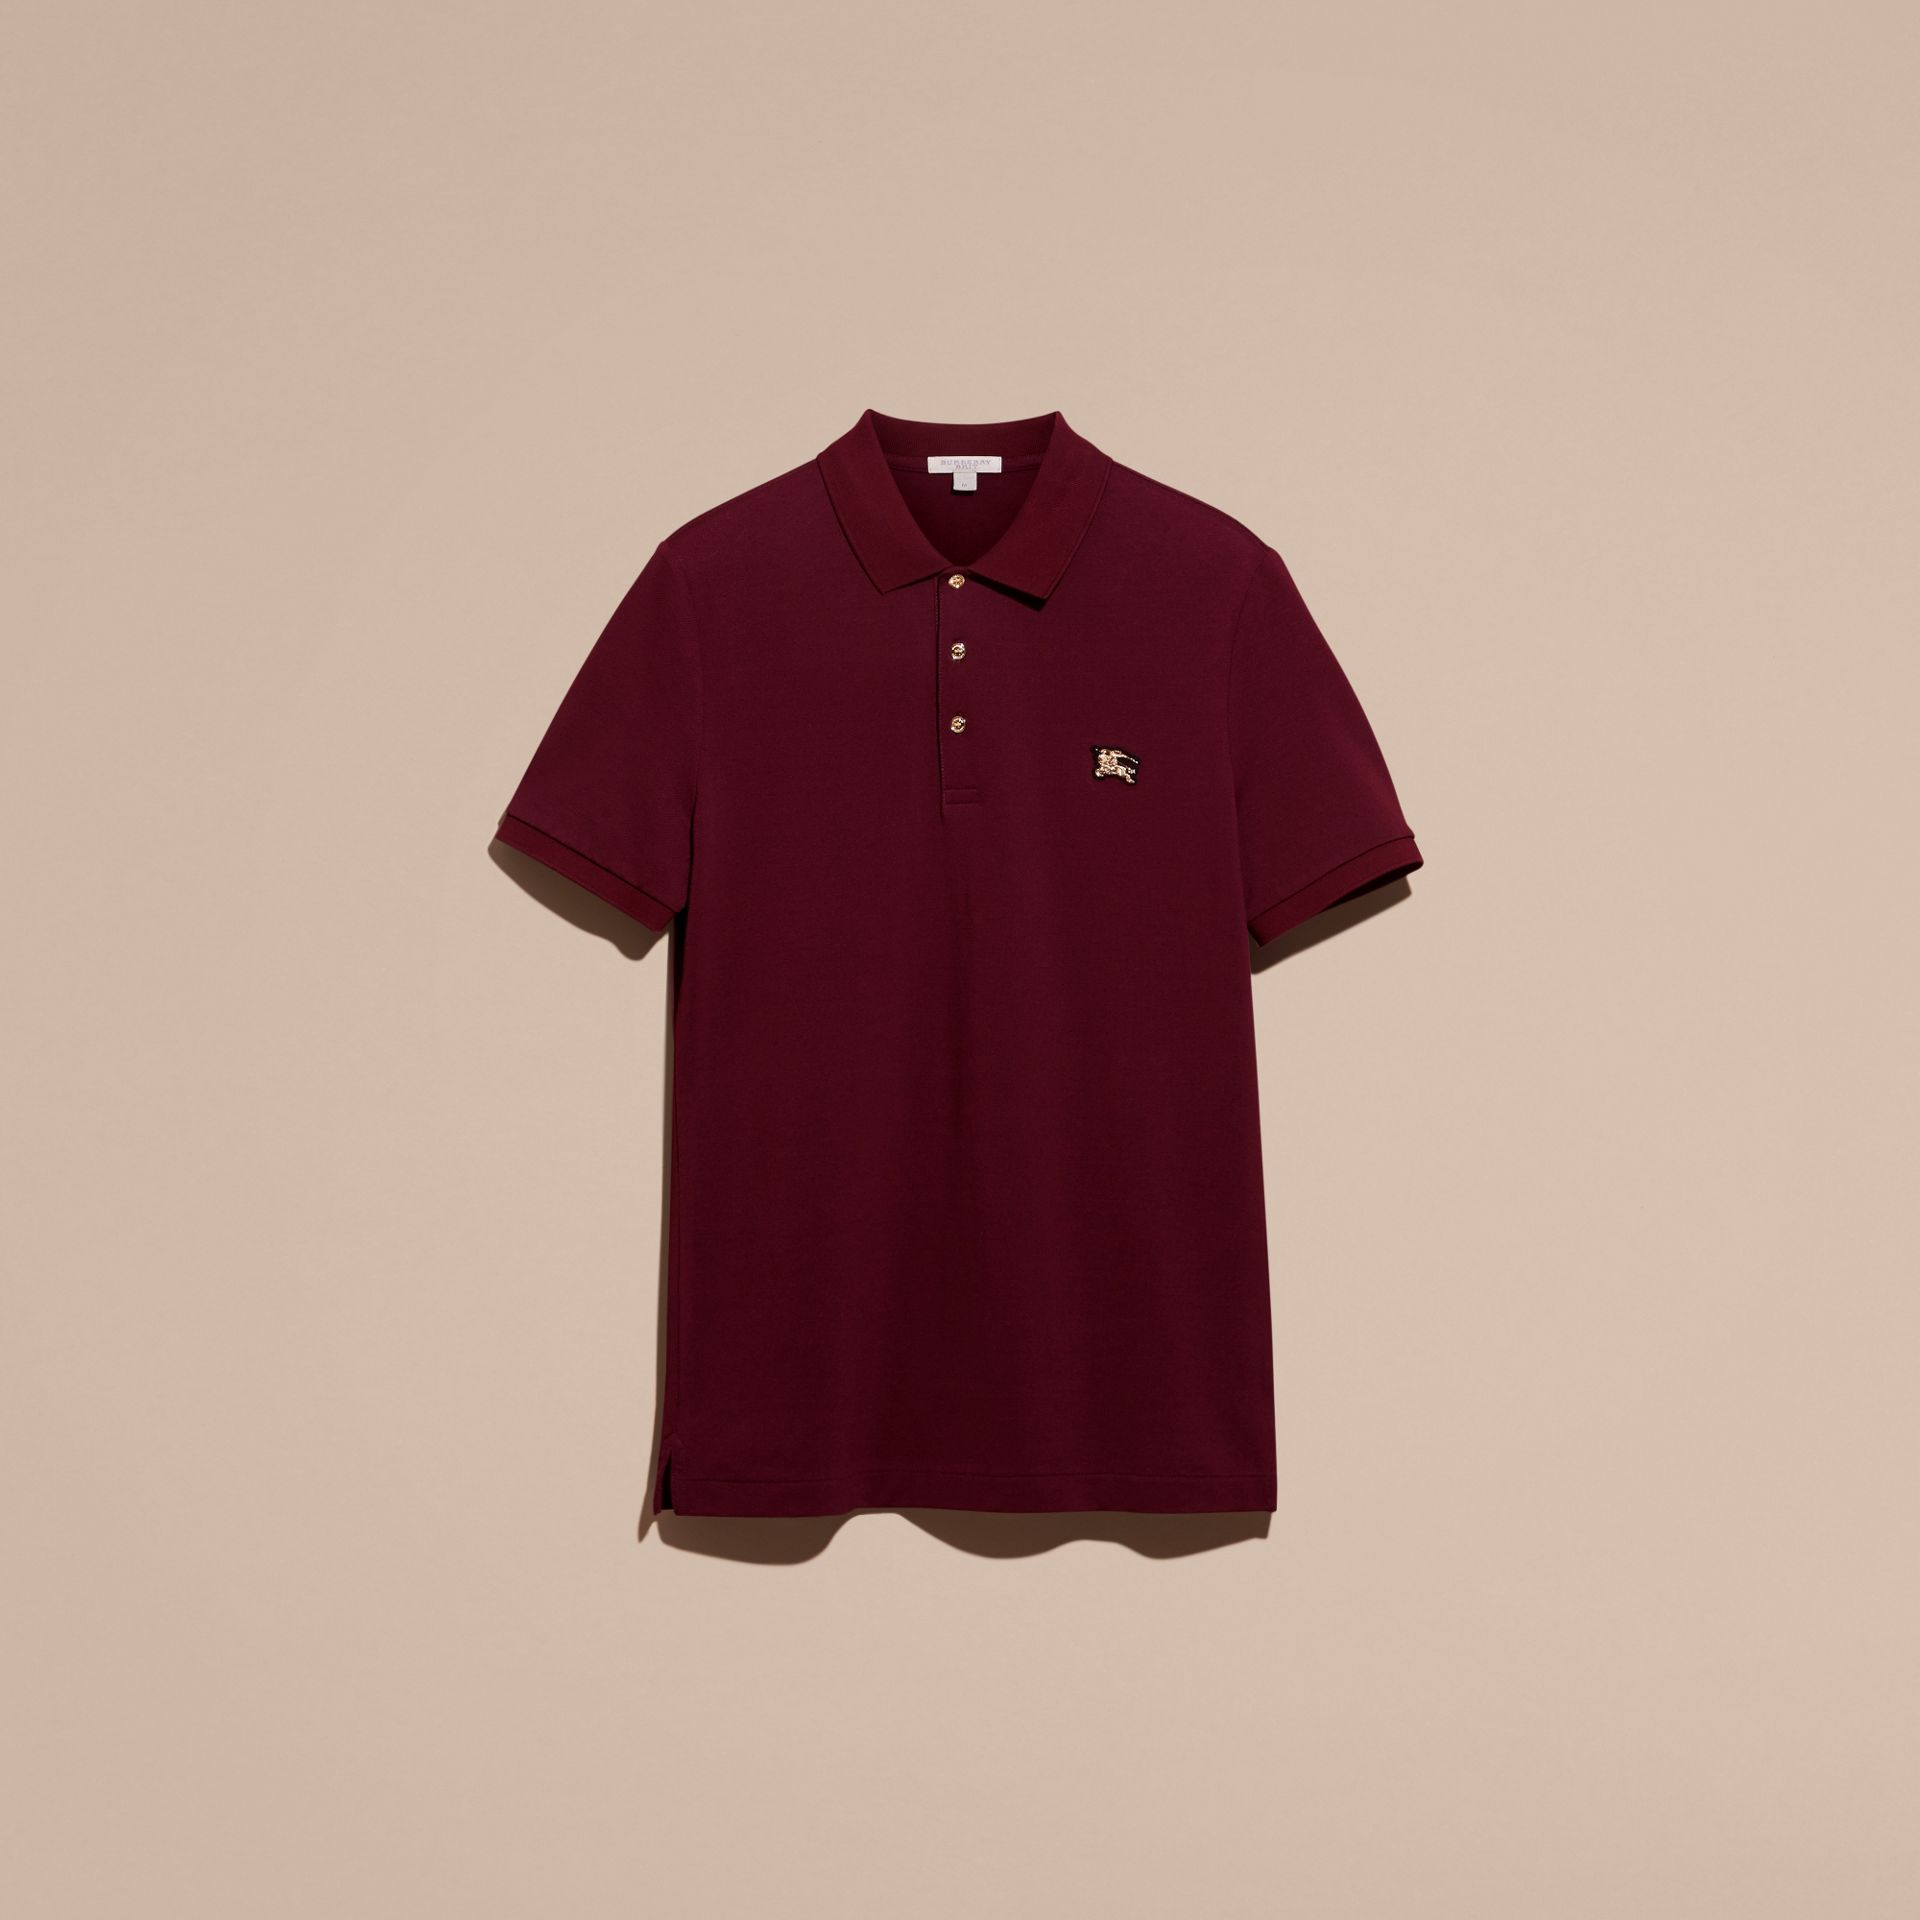 Burgundy red Fitted Mercerised Cotton-Piqué Polo Shirt Burgundy Red - gallery image 4